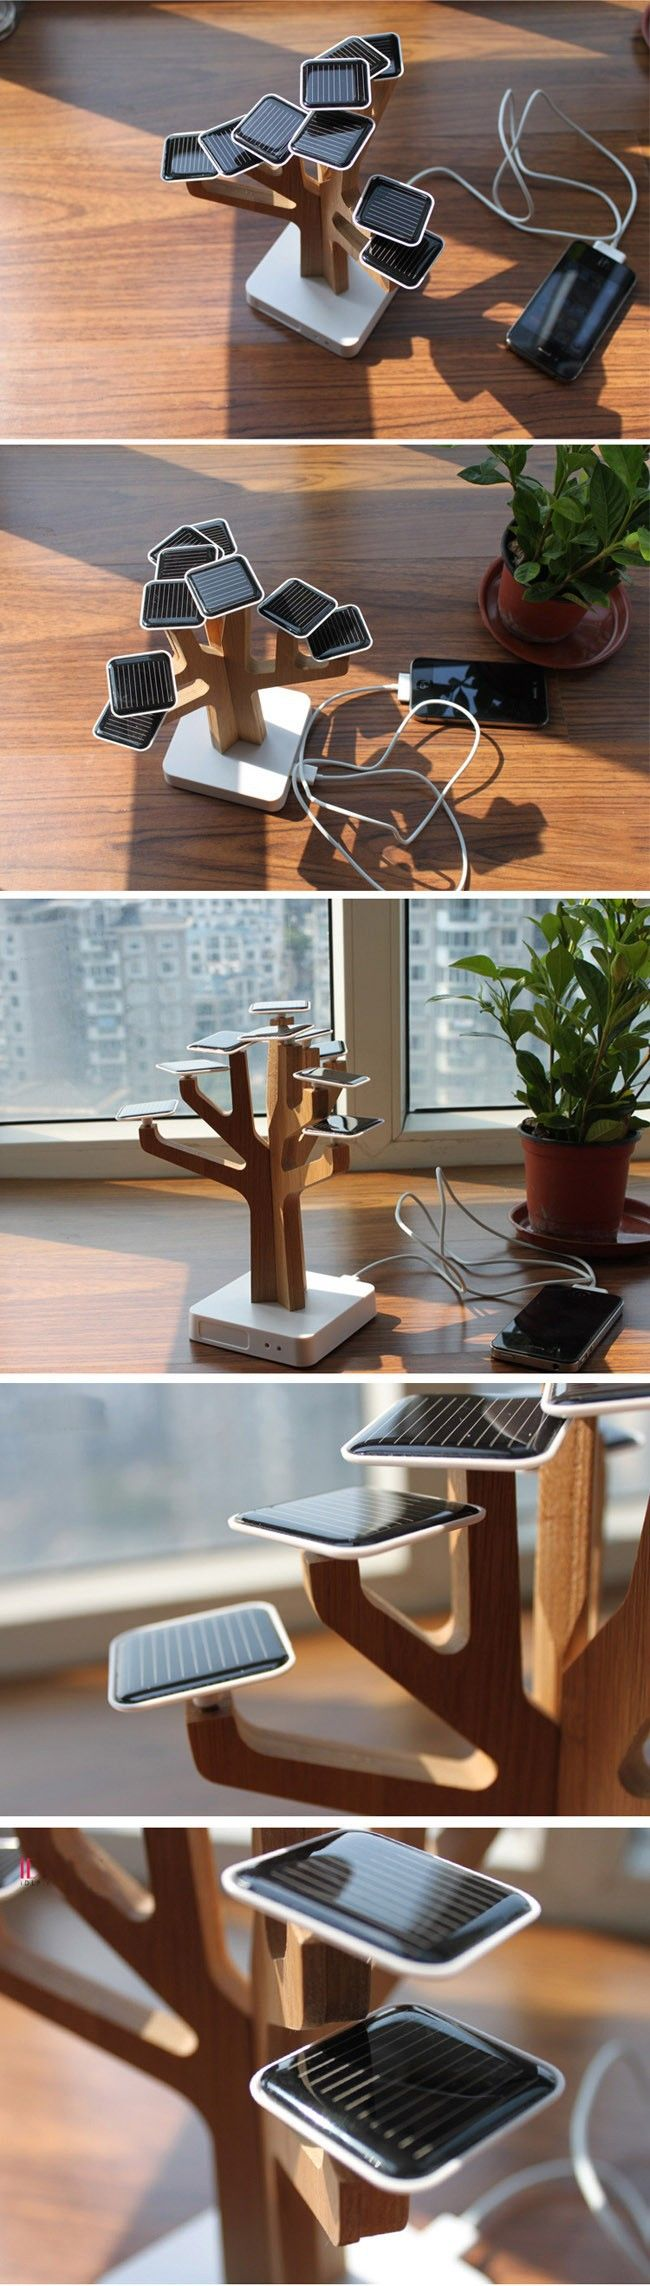 The Solar Suntree Charger is a solar powered charger for your mobile phone. It is powered by 9 solar panel leaves and has a trunk made from bamboo. / TechNews24h.com